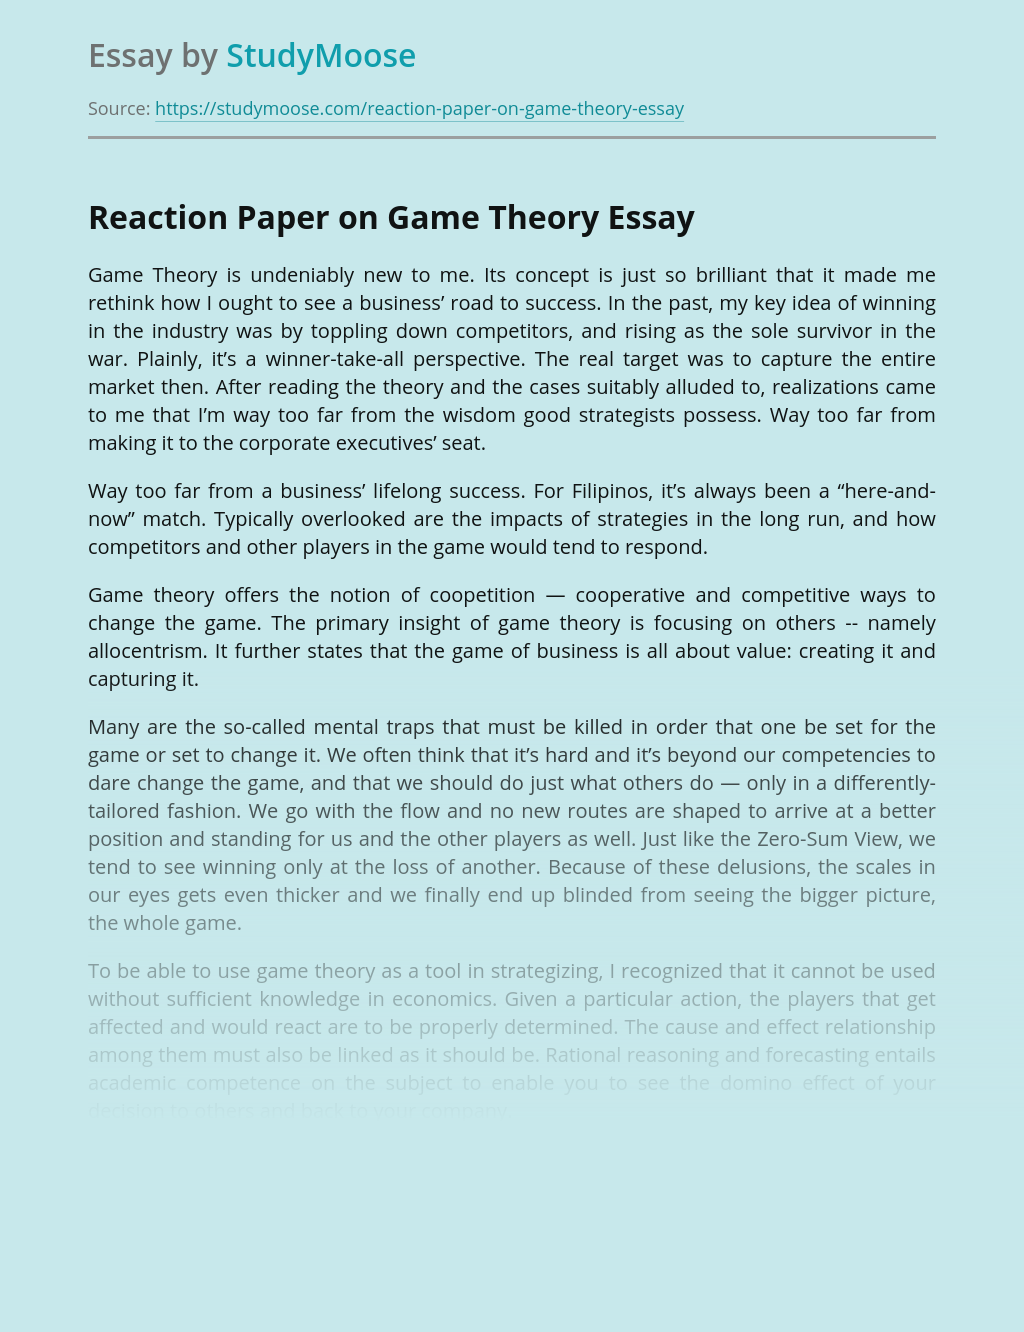 Reaction Paper on Game Theory